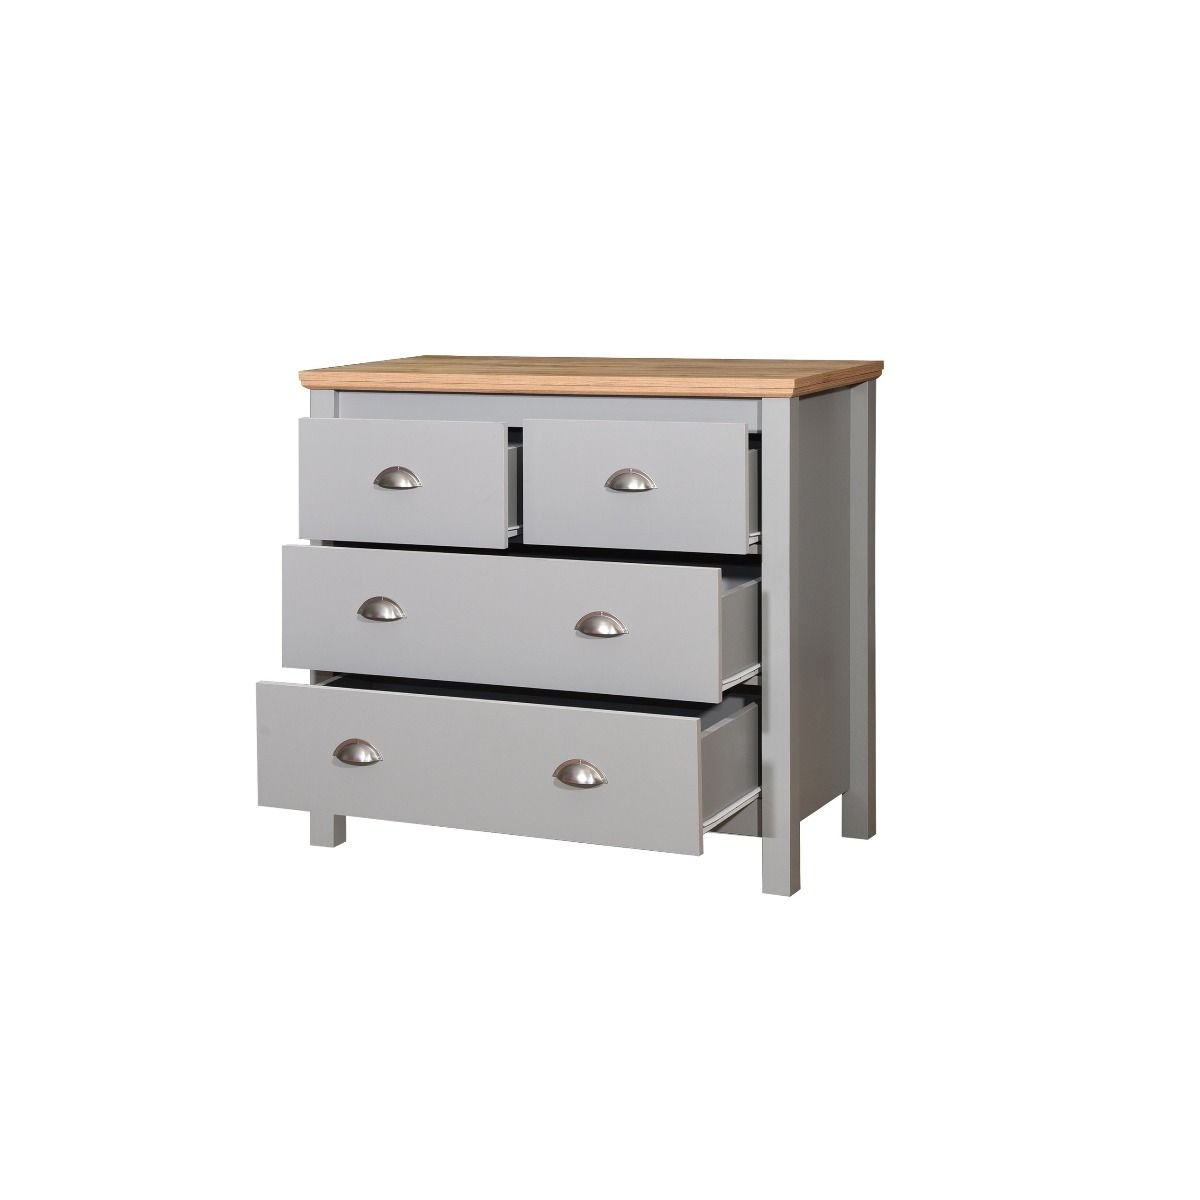 2+2 Drawer Chest